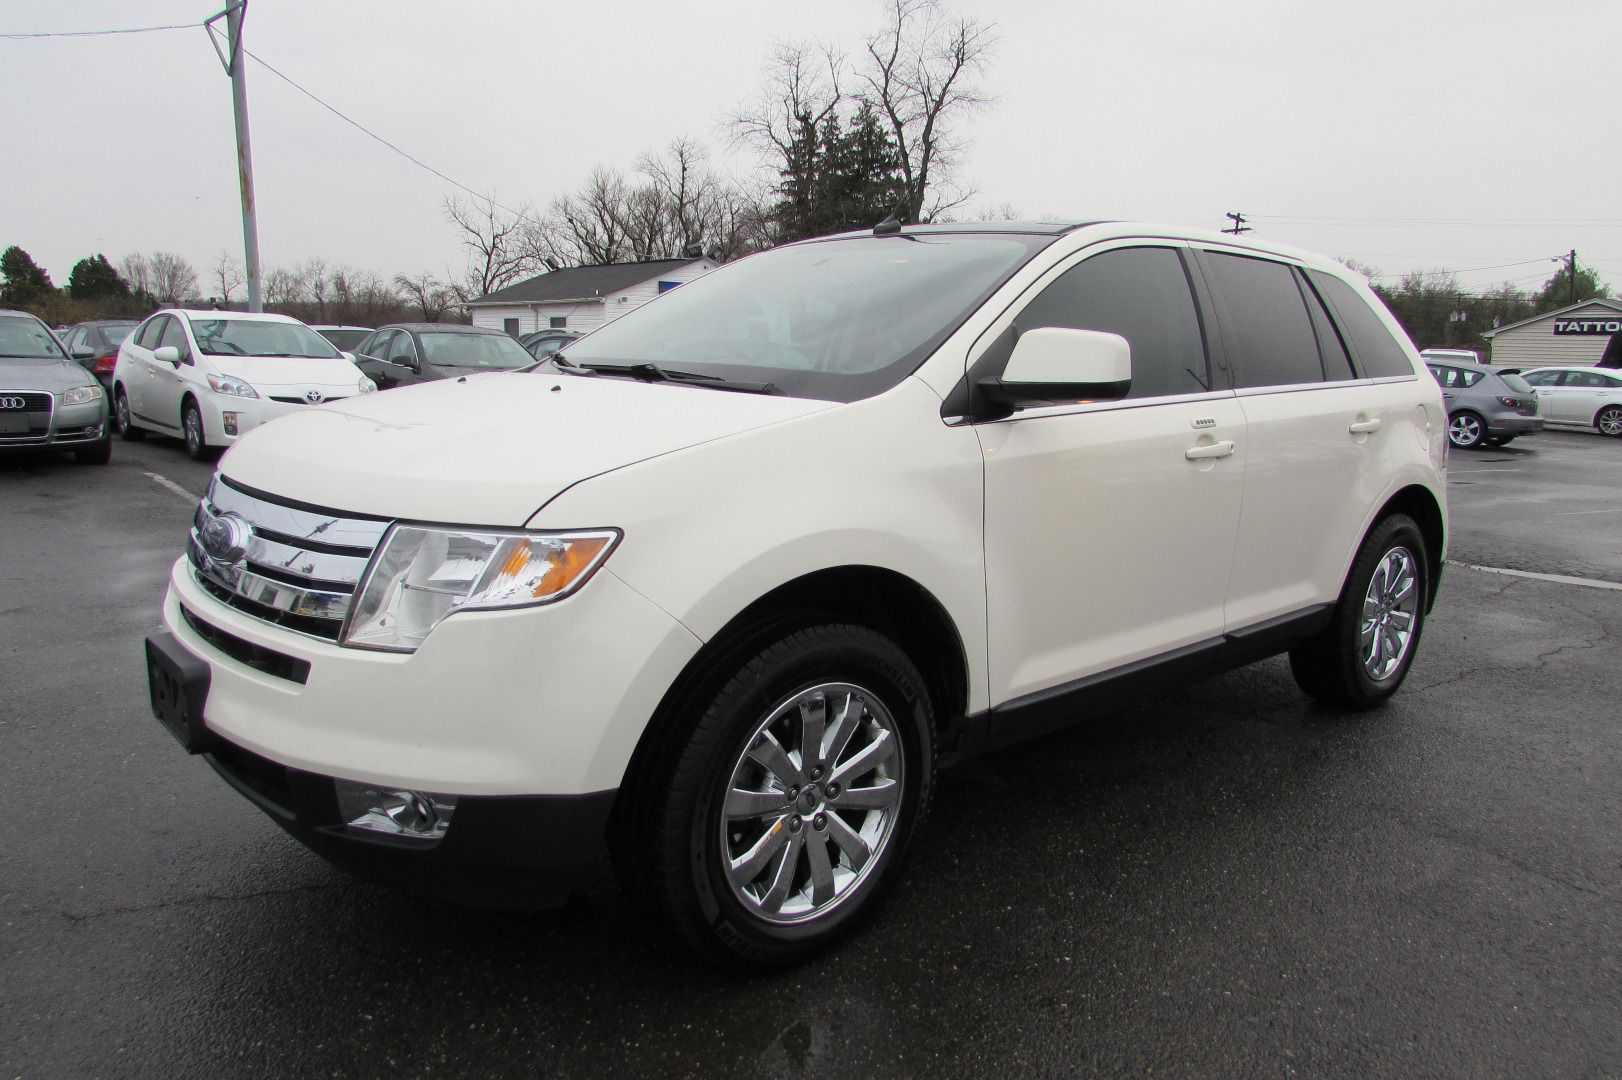 I like this 2008 ford edge limited what do you think https